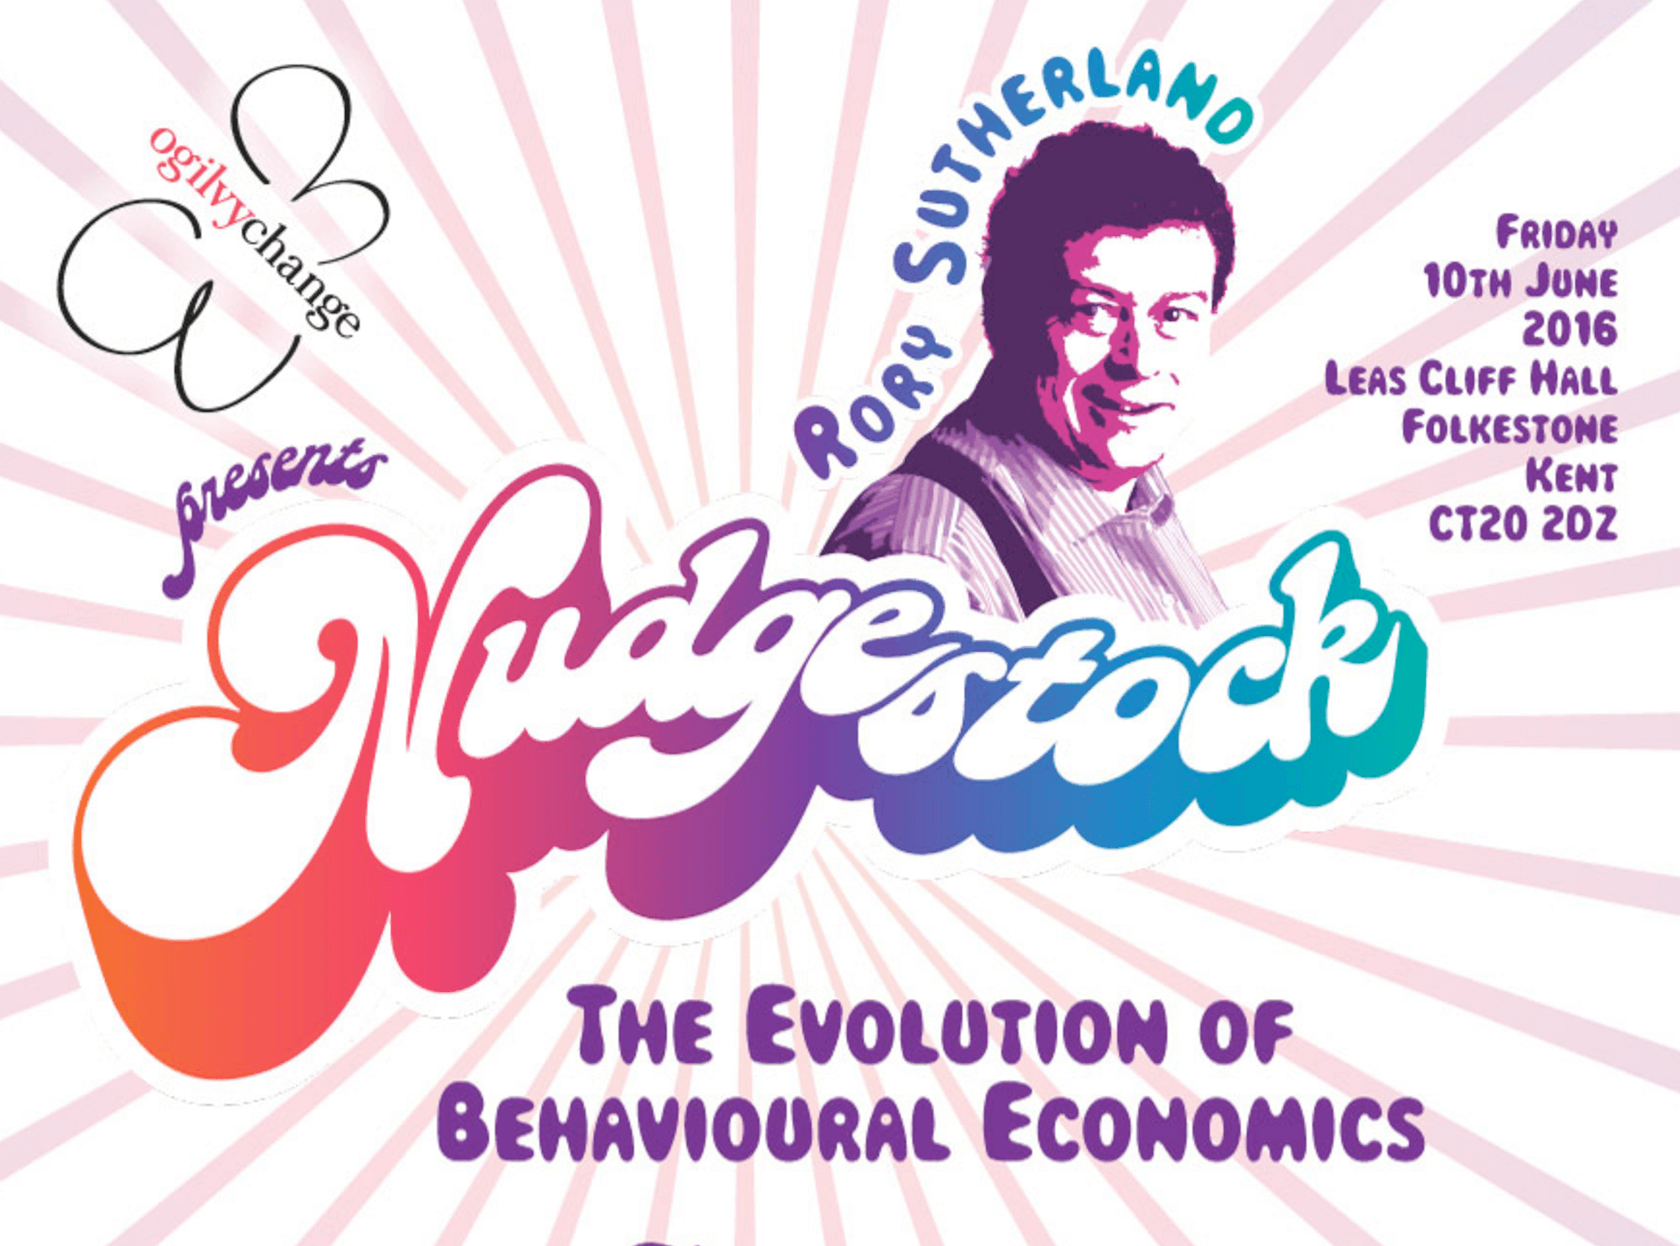 Nudgestock, The Evolution of Behavioural Economics